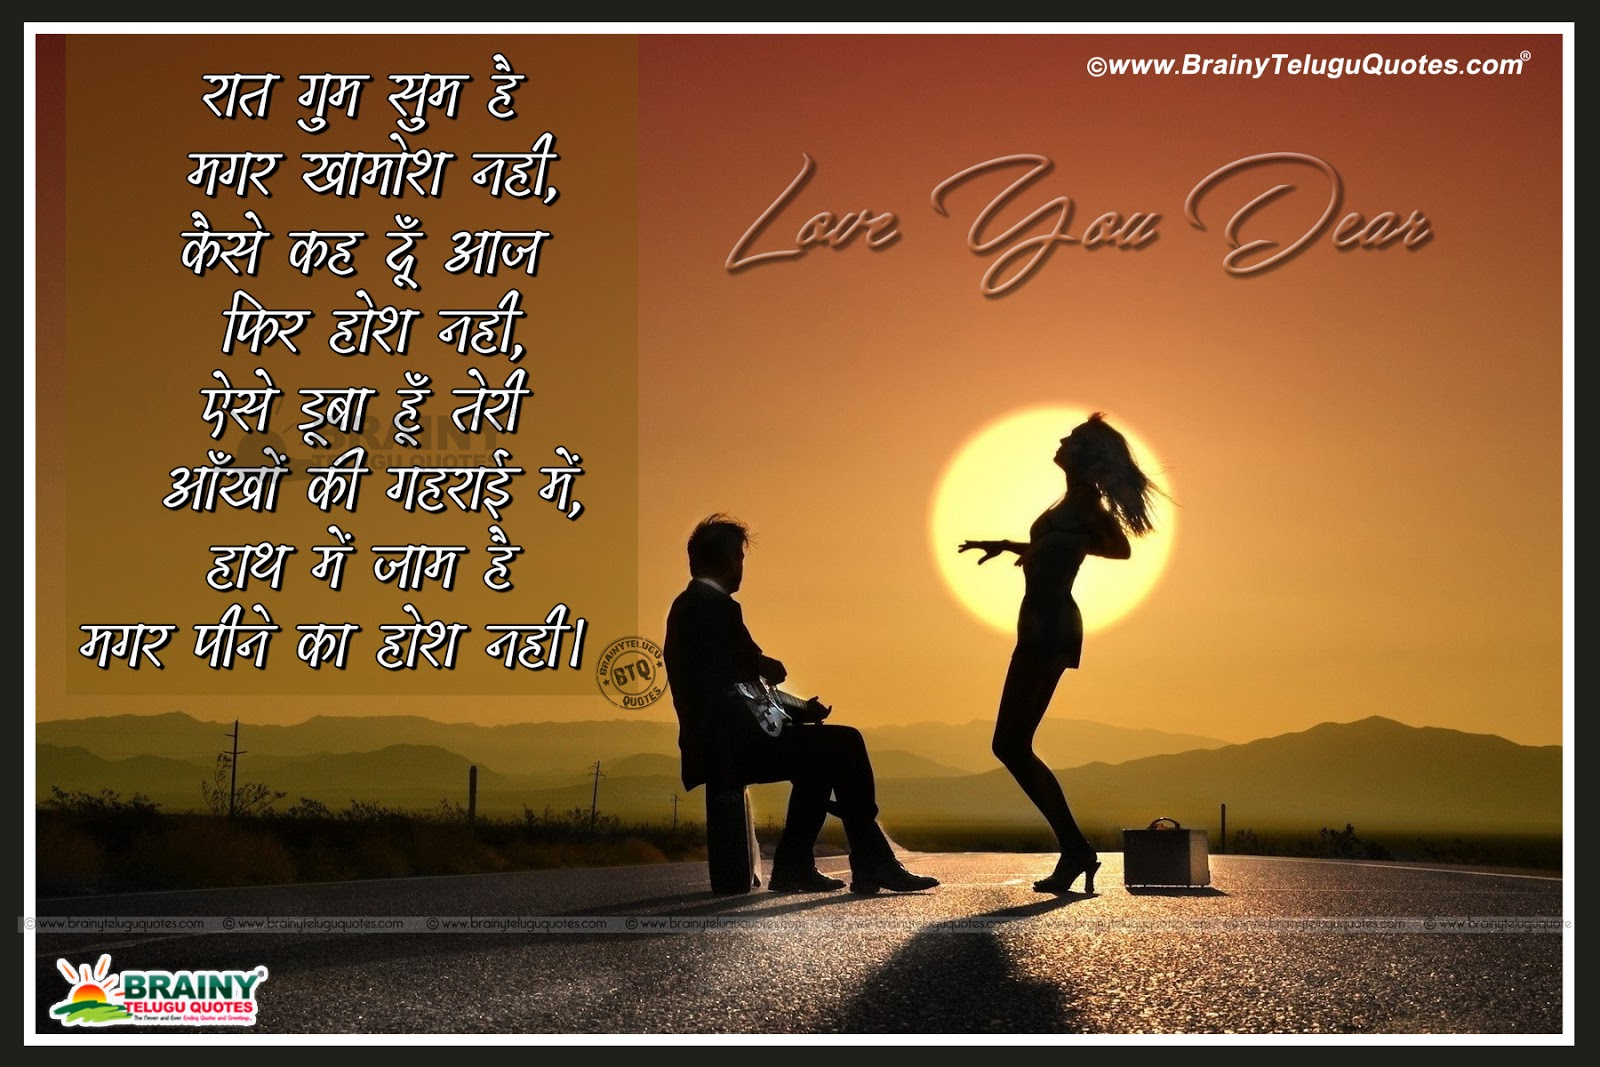 Images Of Love Couple With Quotes In Hindi Hd | Wallpaper ...